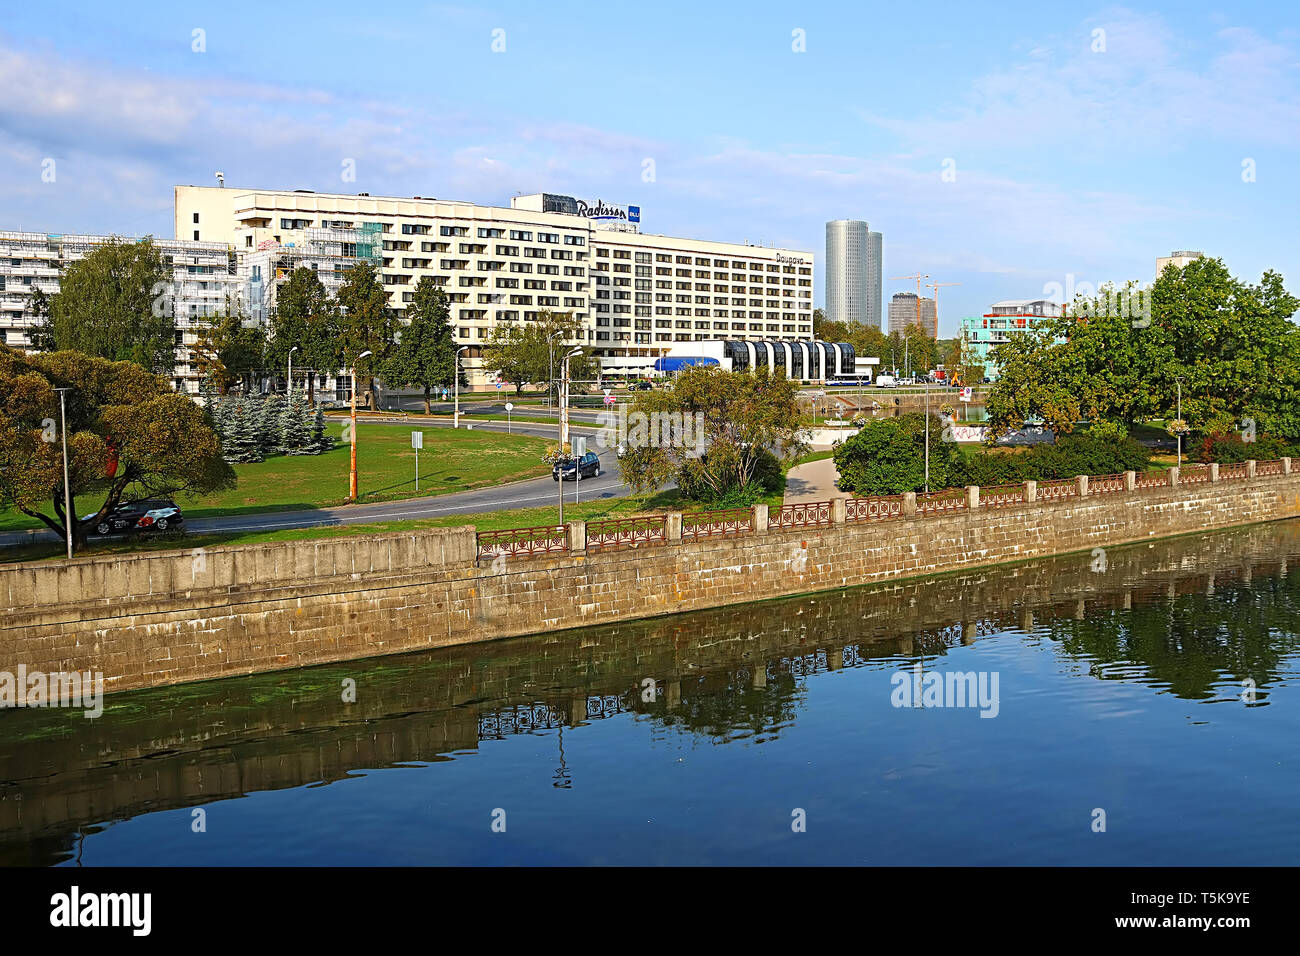 RIGA, LATVIA - AUGUST 29, 2018: Radisson Blu Daugava Hotel on Kugu street 24 - Stock Image